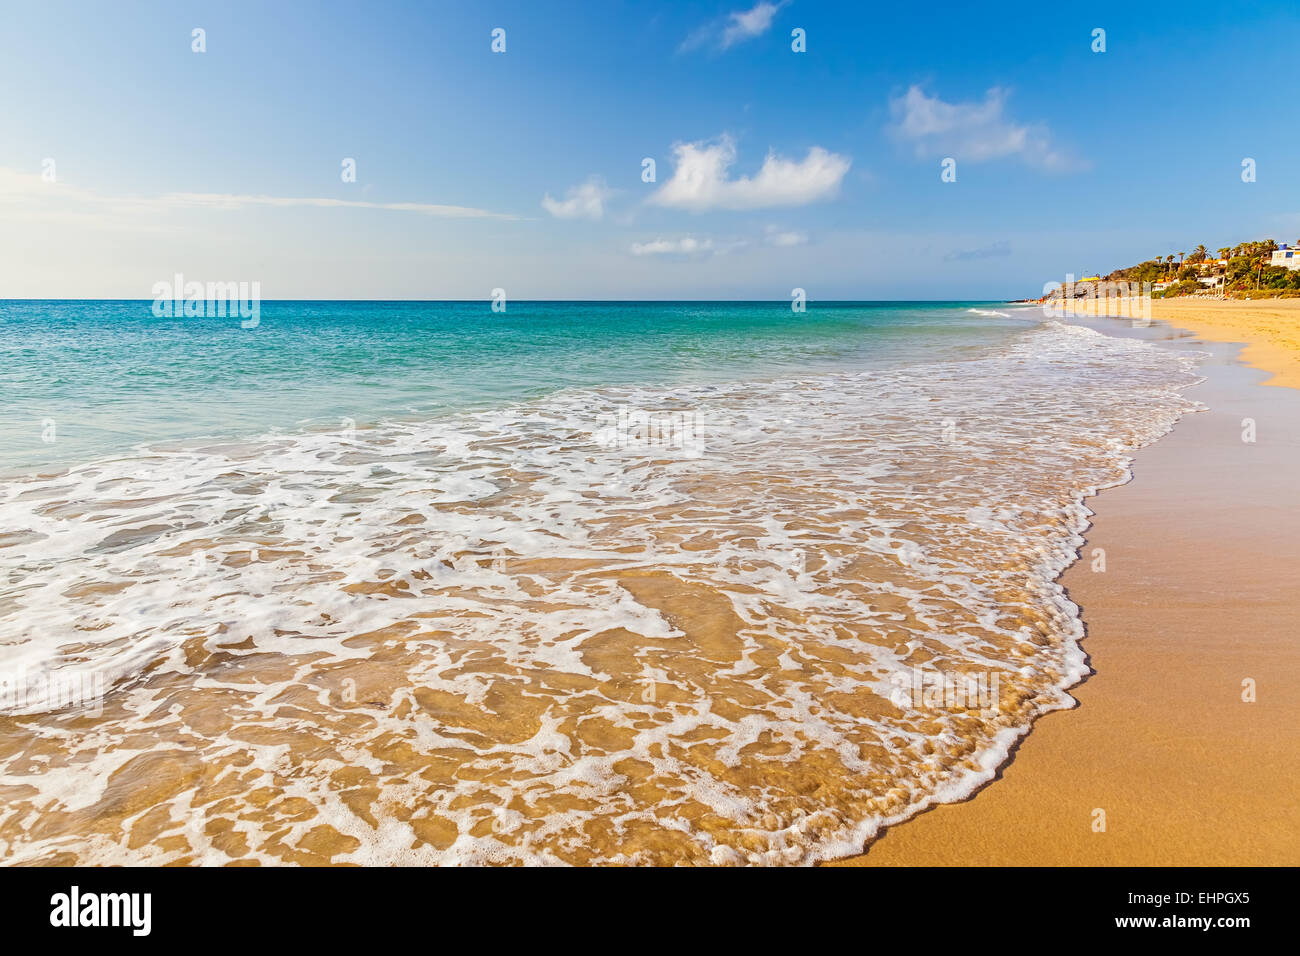 Beautiful ocean beach - Stock Image